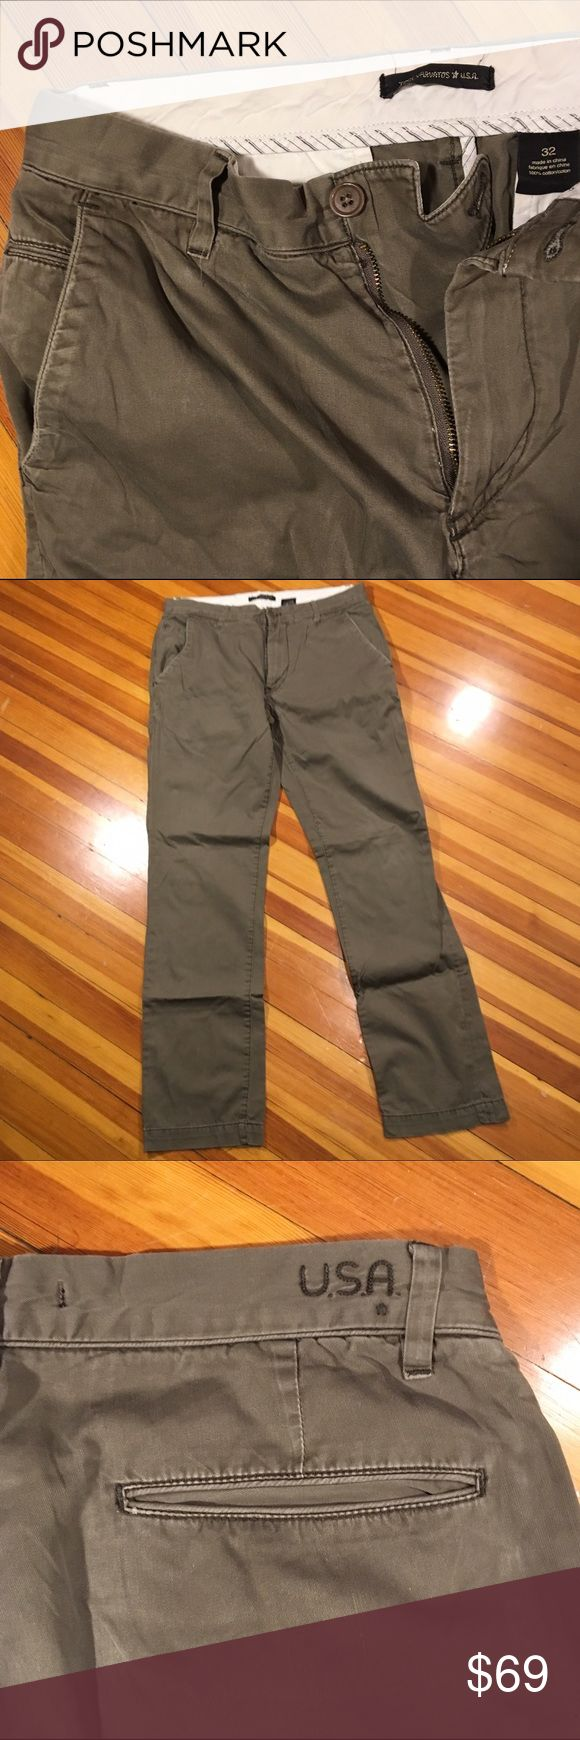 John Varvatos Star USA Straight Leg Chinos These Olive Green Size 32/32 Men's Star by John Varvatos USA Straight Leg Chinos are in great condition. Extremely comfy light weight chinos perfect for the upcoming spring months. John Varvatos Pants Chinos & Khakis